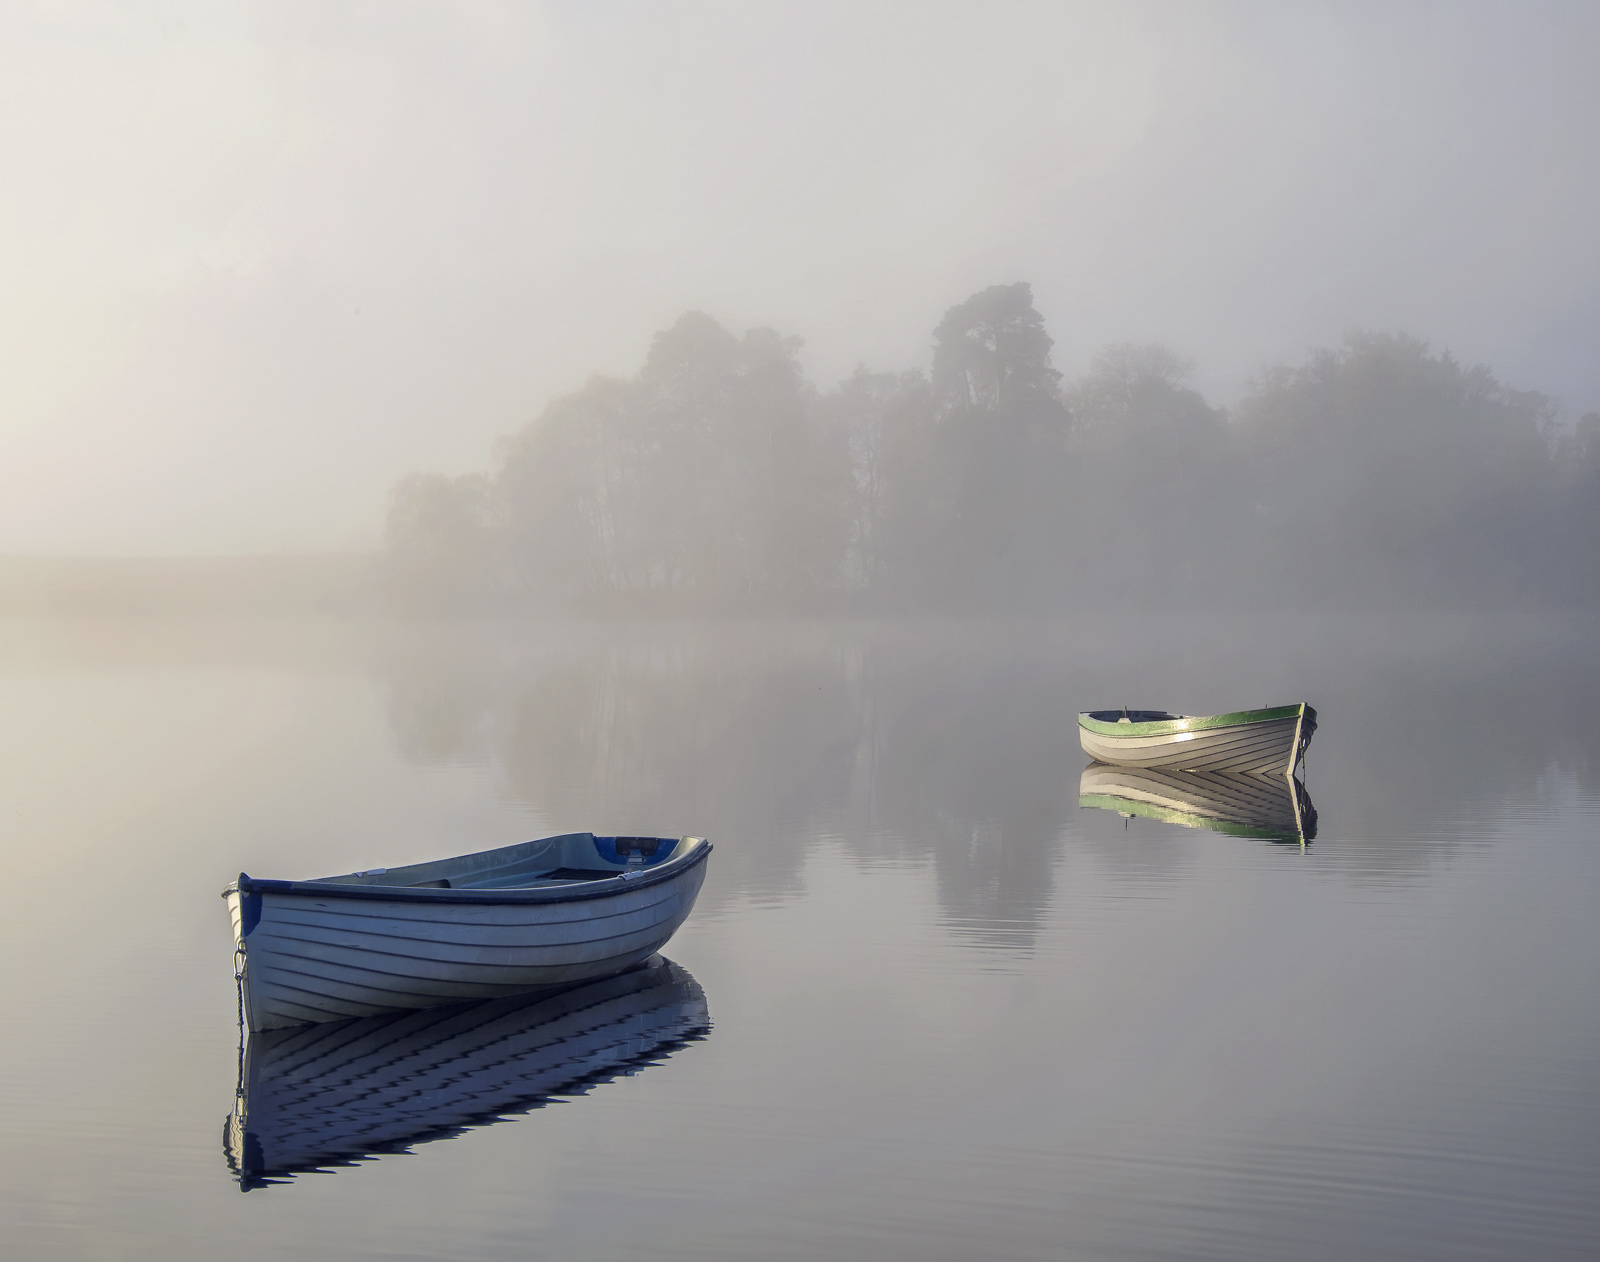 Ethereal 2, Loch Rusky, Trossachs, Scotland, autumnal, view, concealed, revealed, simplifies, composition, boat, highlig, photo